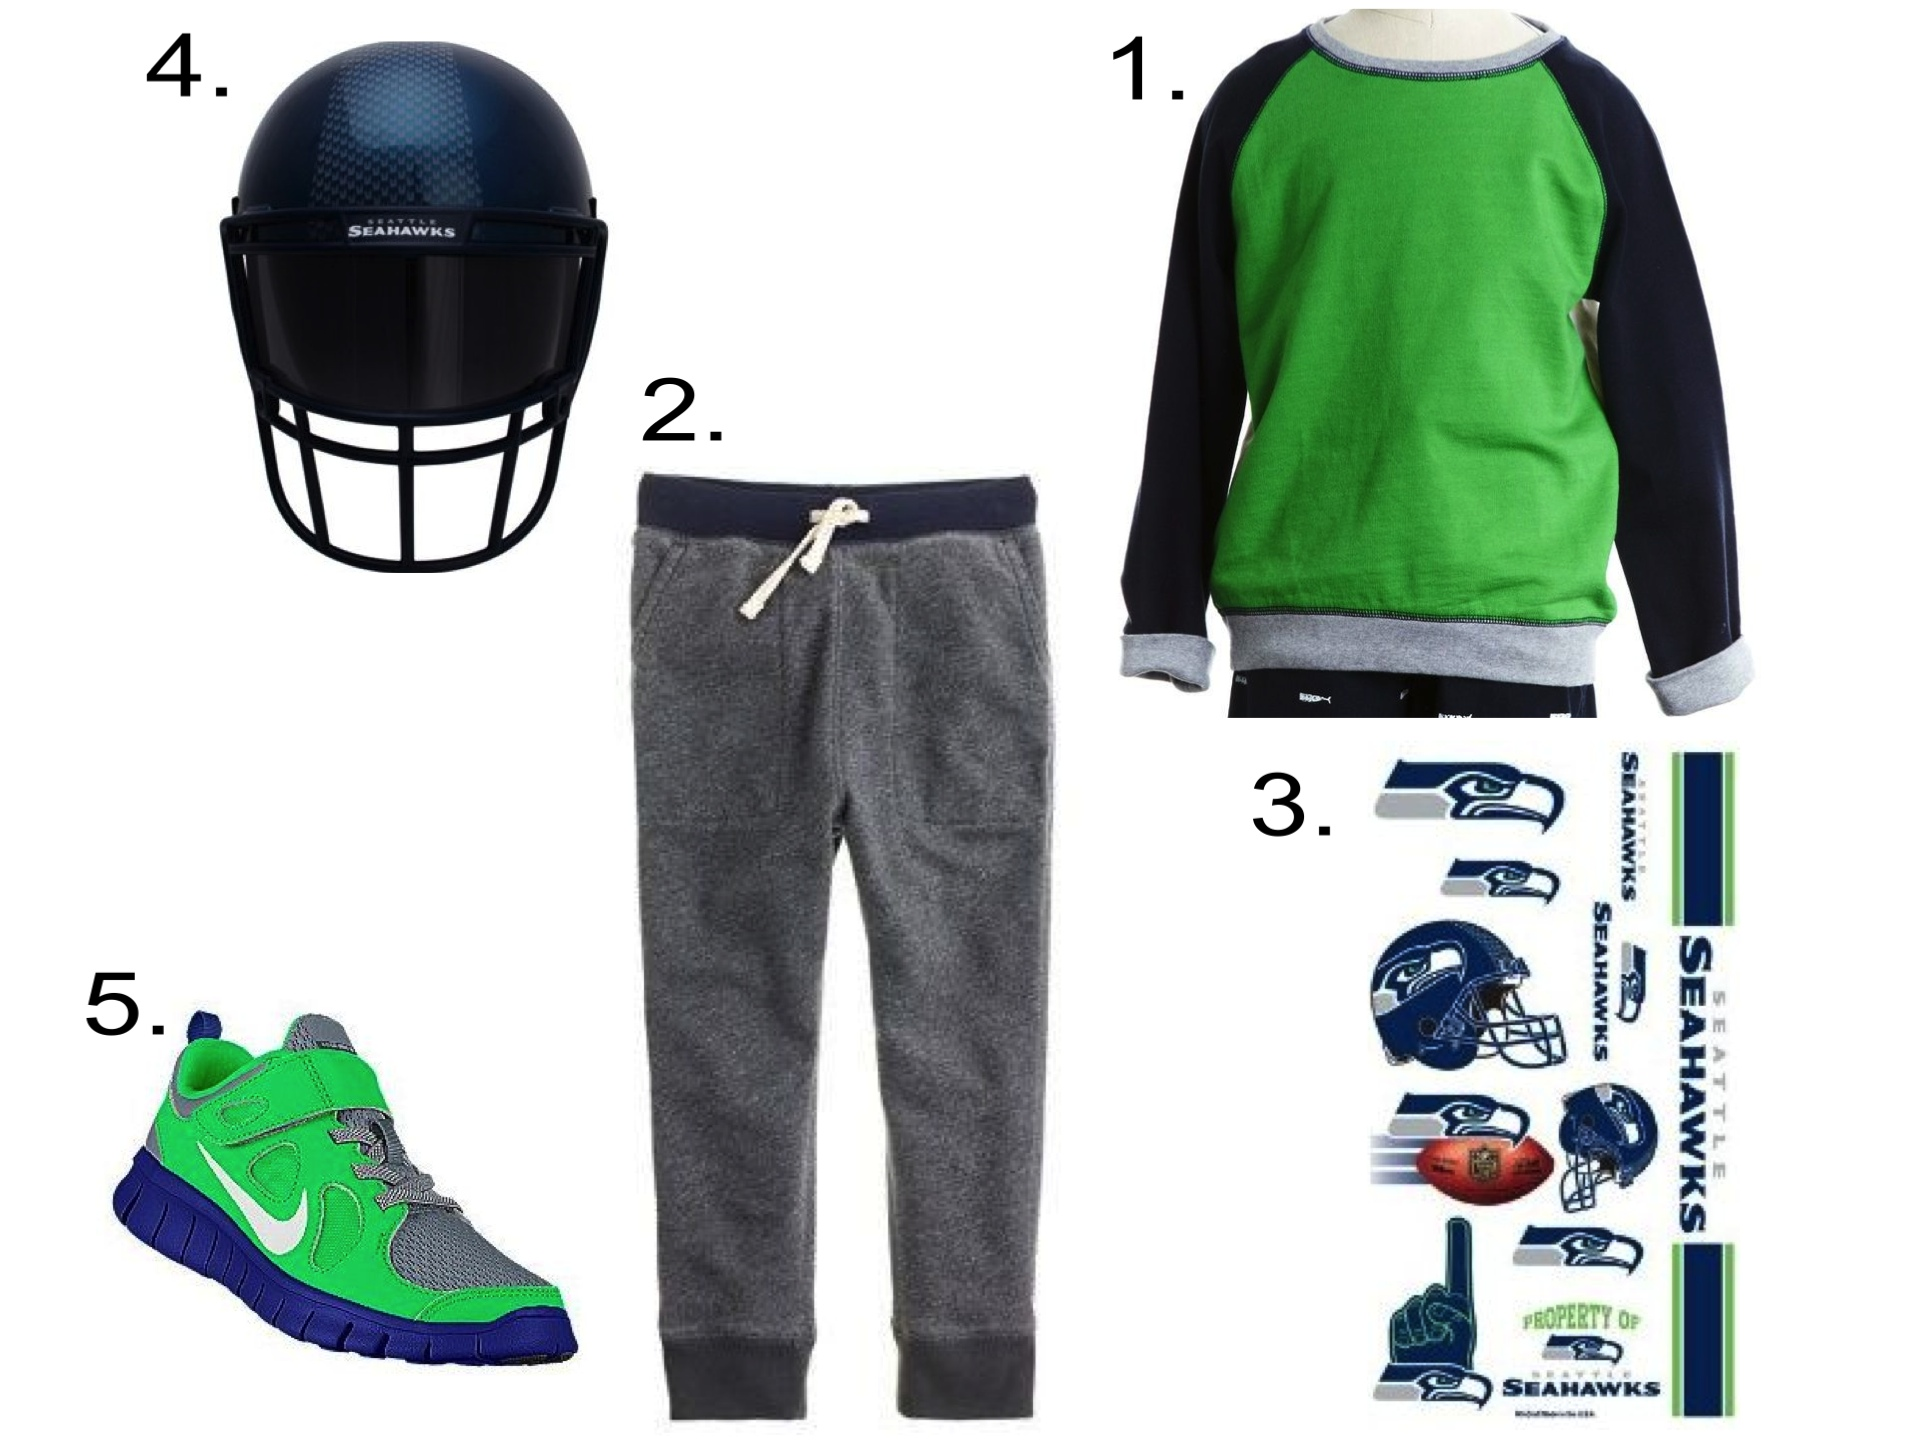 And Cool Little Seattle Seahawks Fans will Love this Colorblock Sweatshirt with Slouchy Sweatpants in their Favorite Team's Colors. A Pair of Nike Free Sneakers is the perfect shoe to complete this outfit (I customized these with Seattle Seahawks' Team Colors). Your little ones will have fun covering themselves with Seattle Seahawks Temporary Tattoos and wearing this Seattle Seahawks FunMask!  1. Peek…  Colorblock Crew  | 2. J.Crew  Boys' Slim Slouchy Sweatpants  |3.  Seattle Seahawks Temporary Tattoos  | 4.  Seattle Seahawks Funmask  | 5.  Nike Free 5.0 ID Customized Sneaker